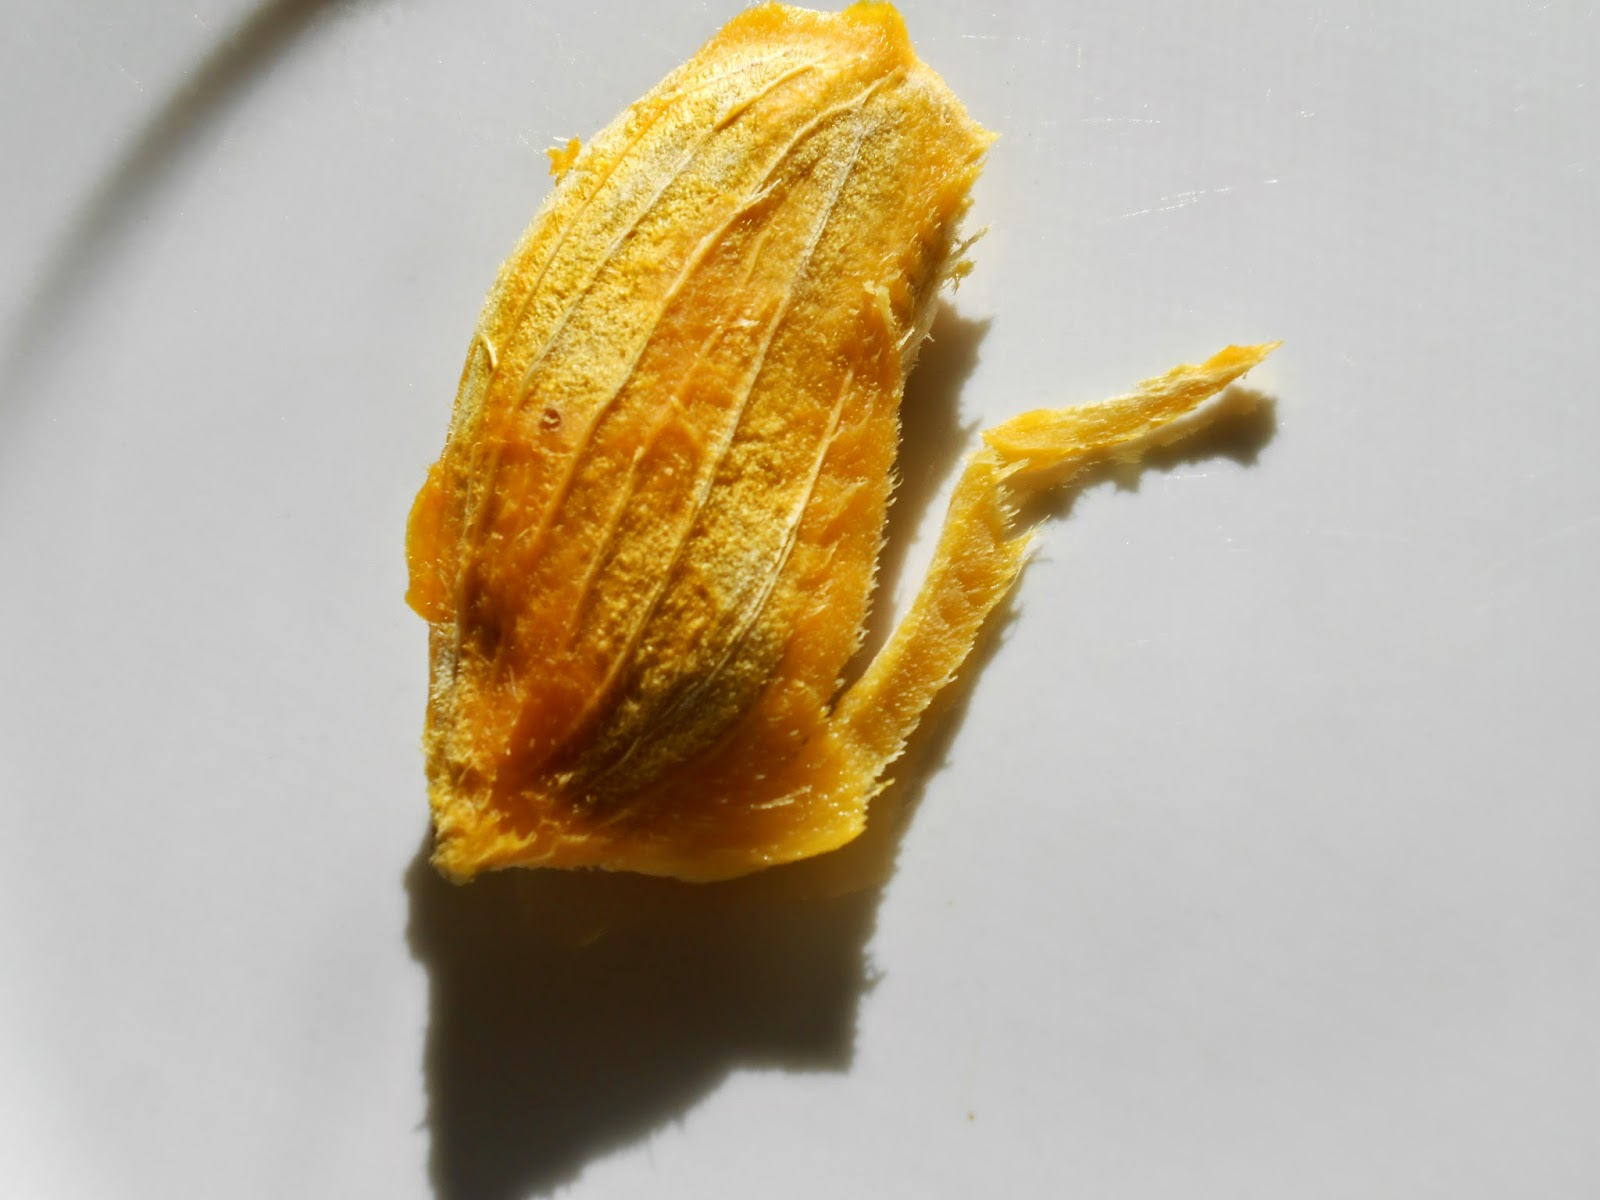 How to open a mango seed